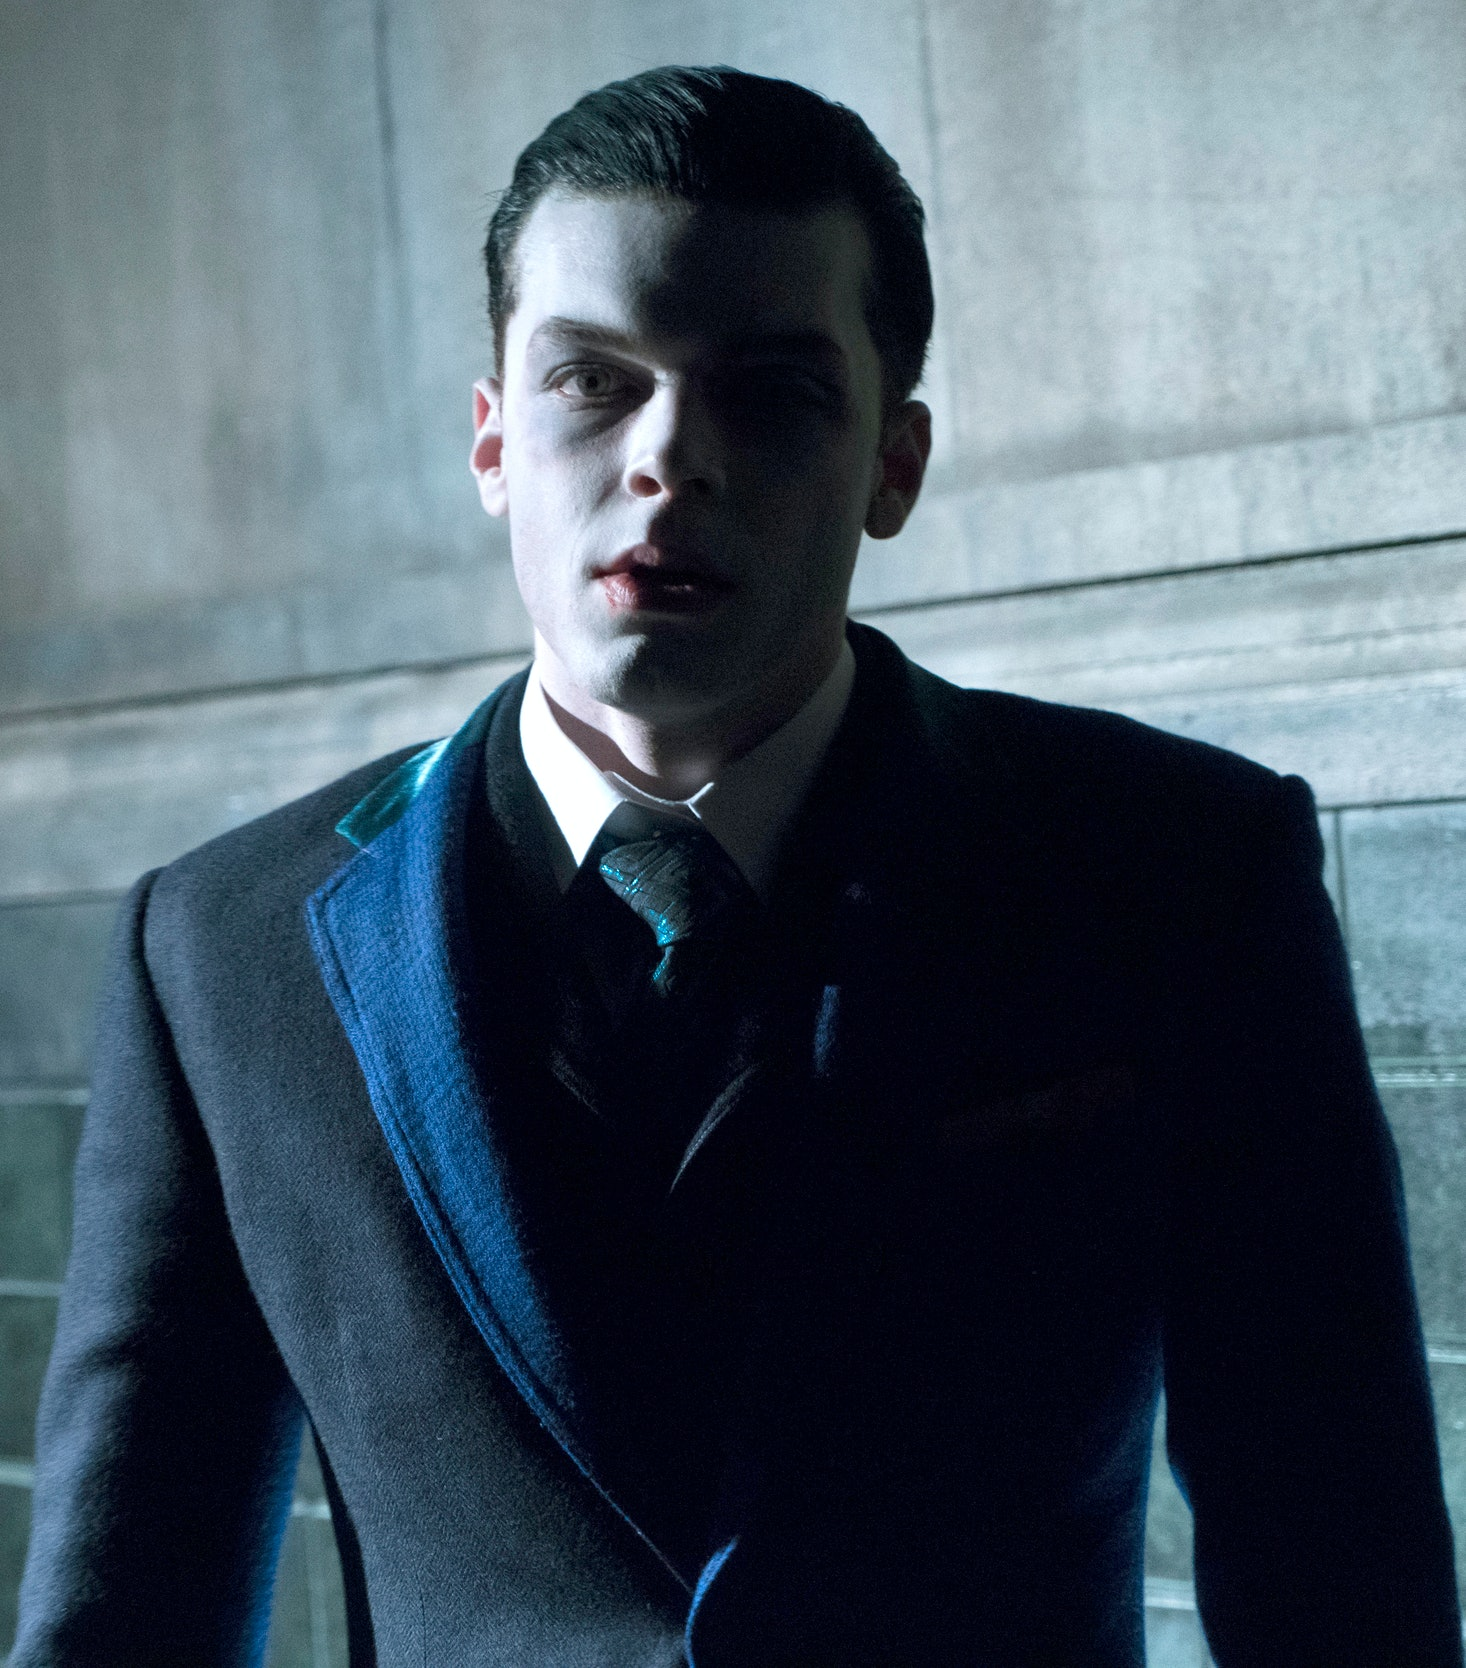 9 Clues That Jeremiah Is The Joker On 'Gotham' Point To Batman's